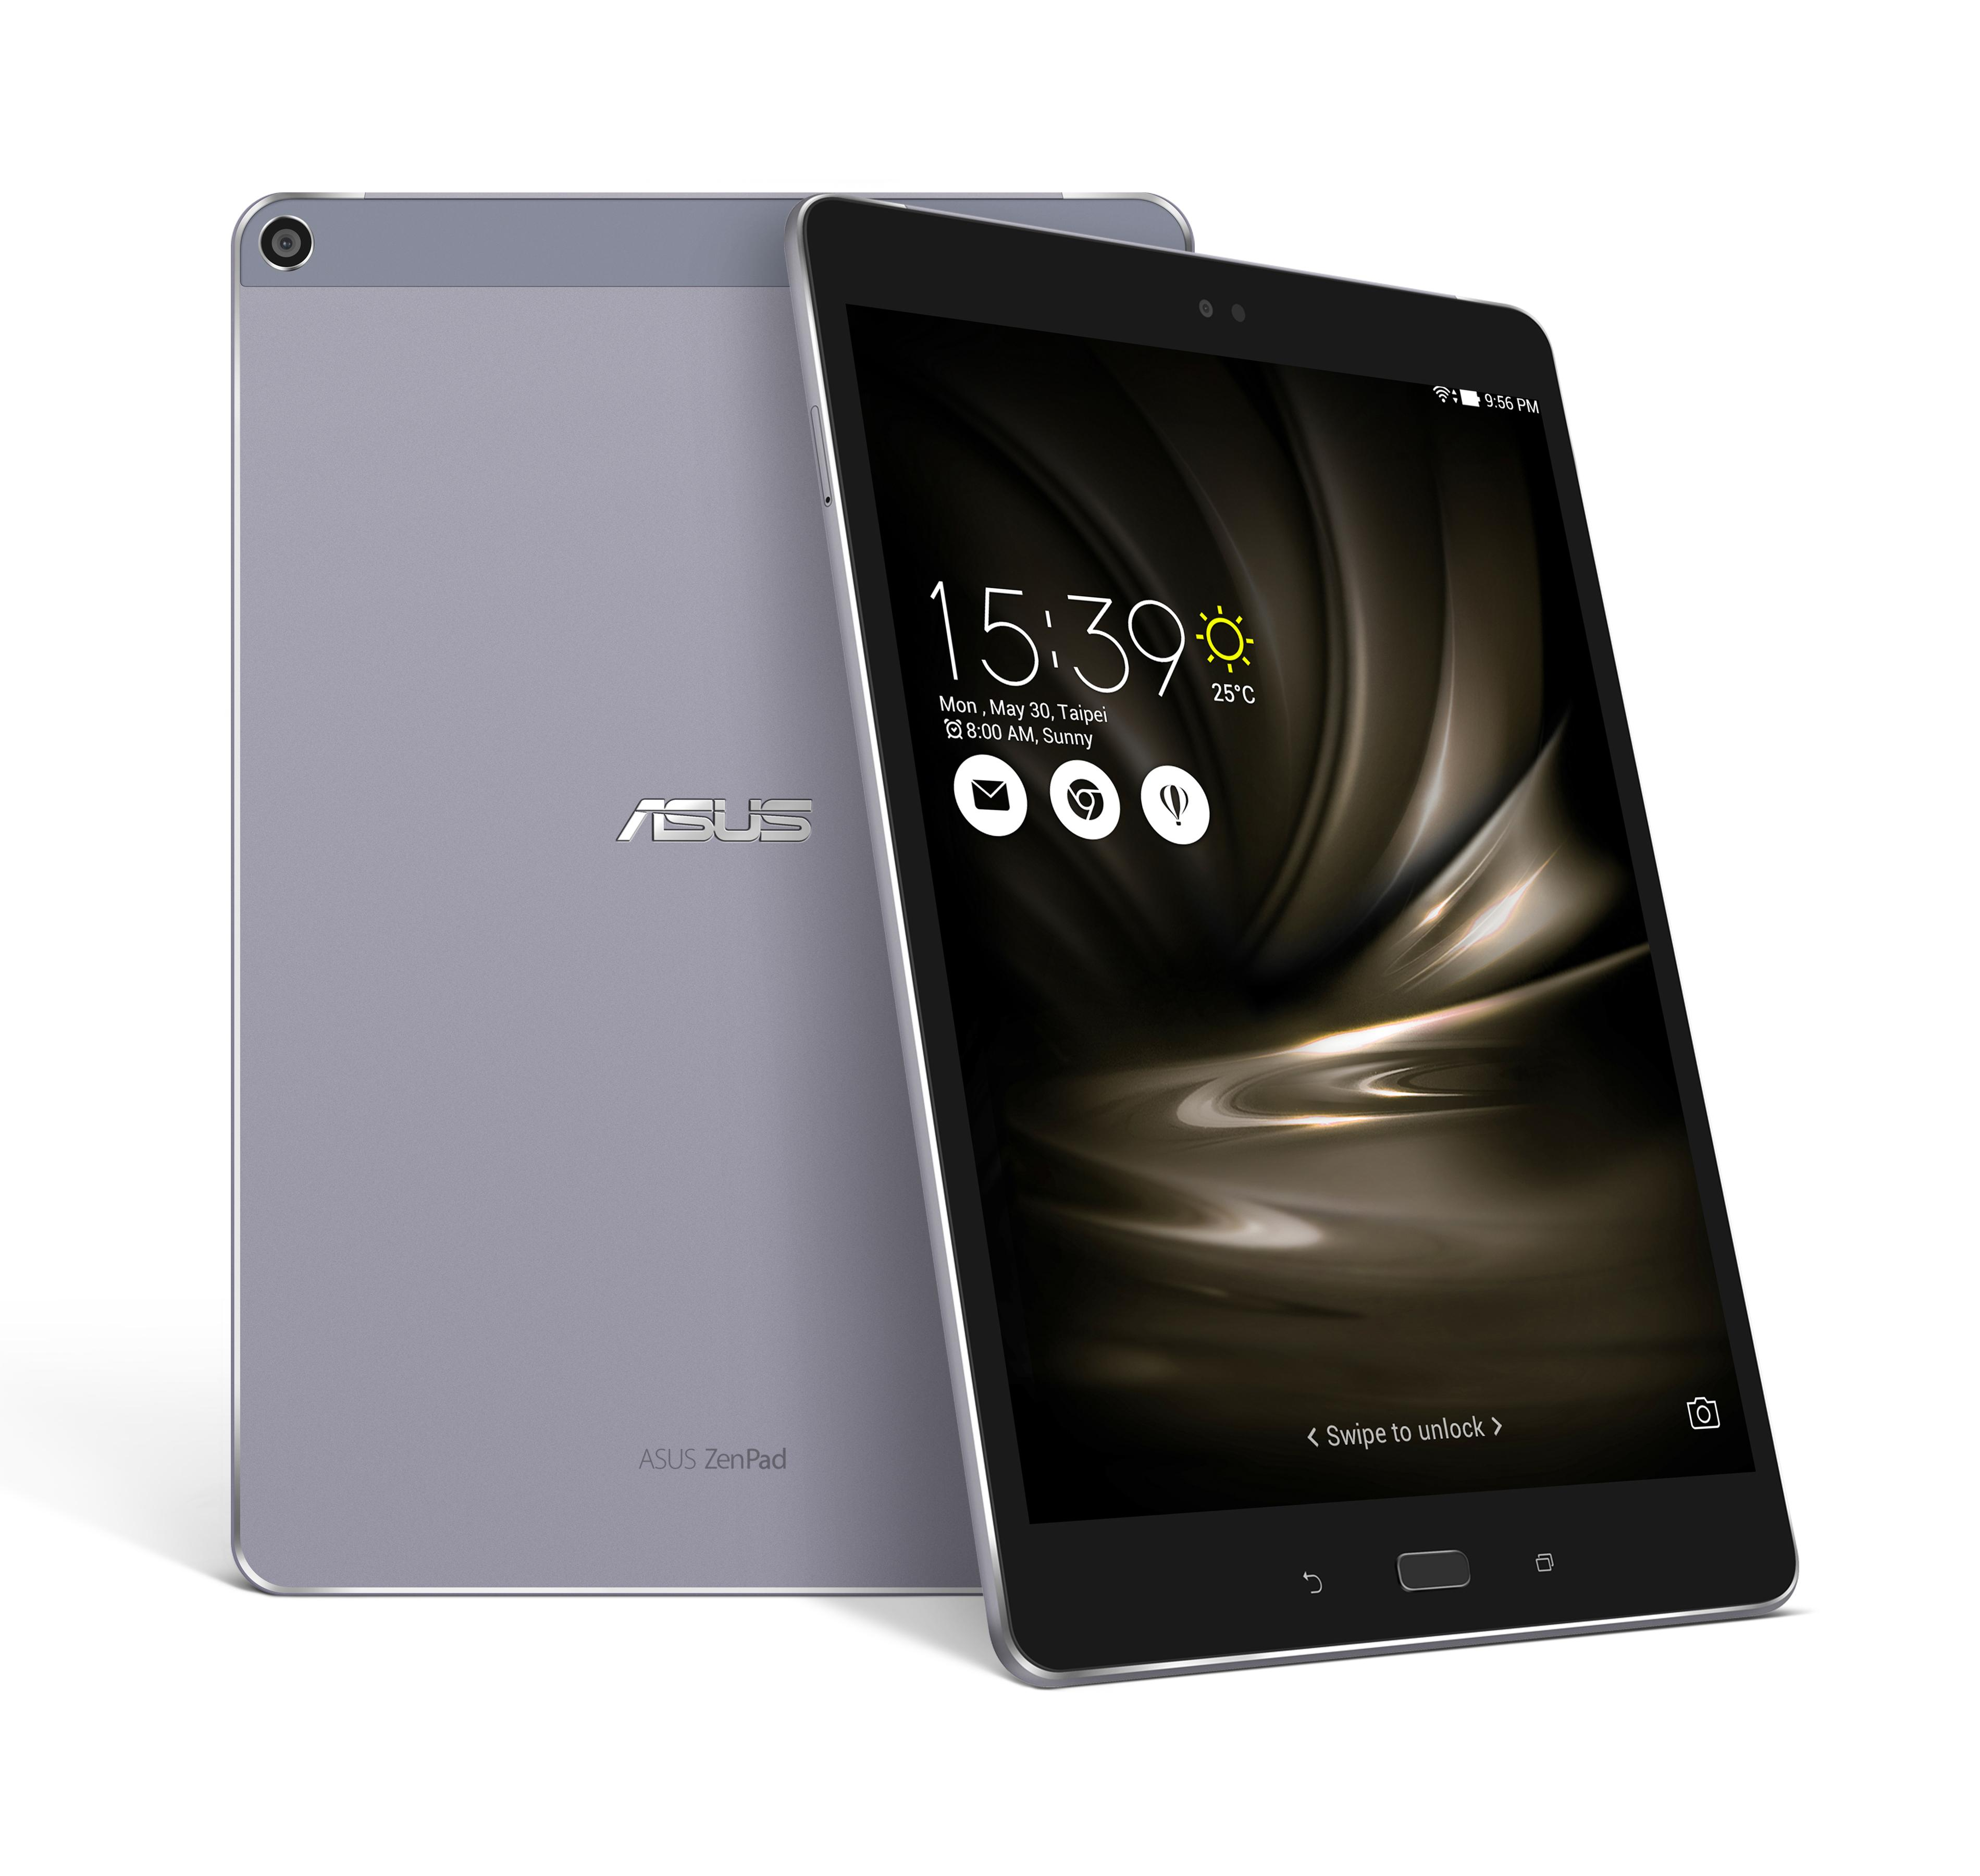 "ASUS PAD ZenPad 3S 10 LTE - Qualcomm MSM8956, 9.7"" IPS, 2048x1536, 4G, 64G, WiFi, BT, Android M, šedý"